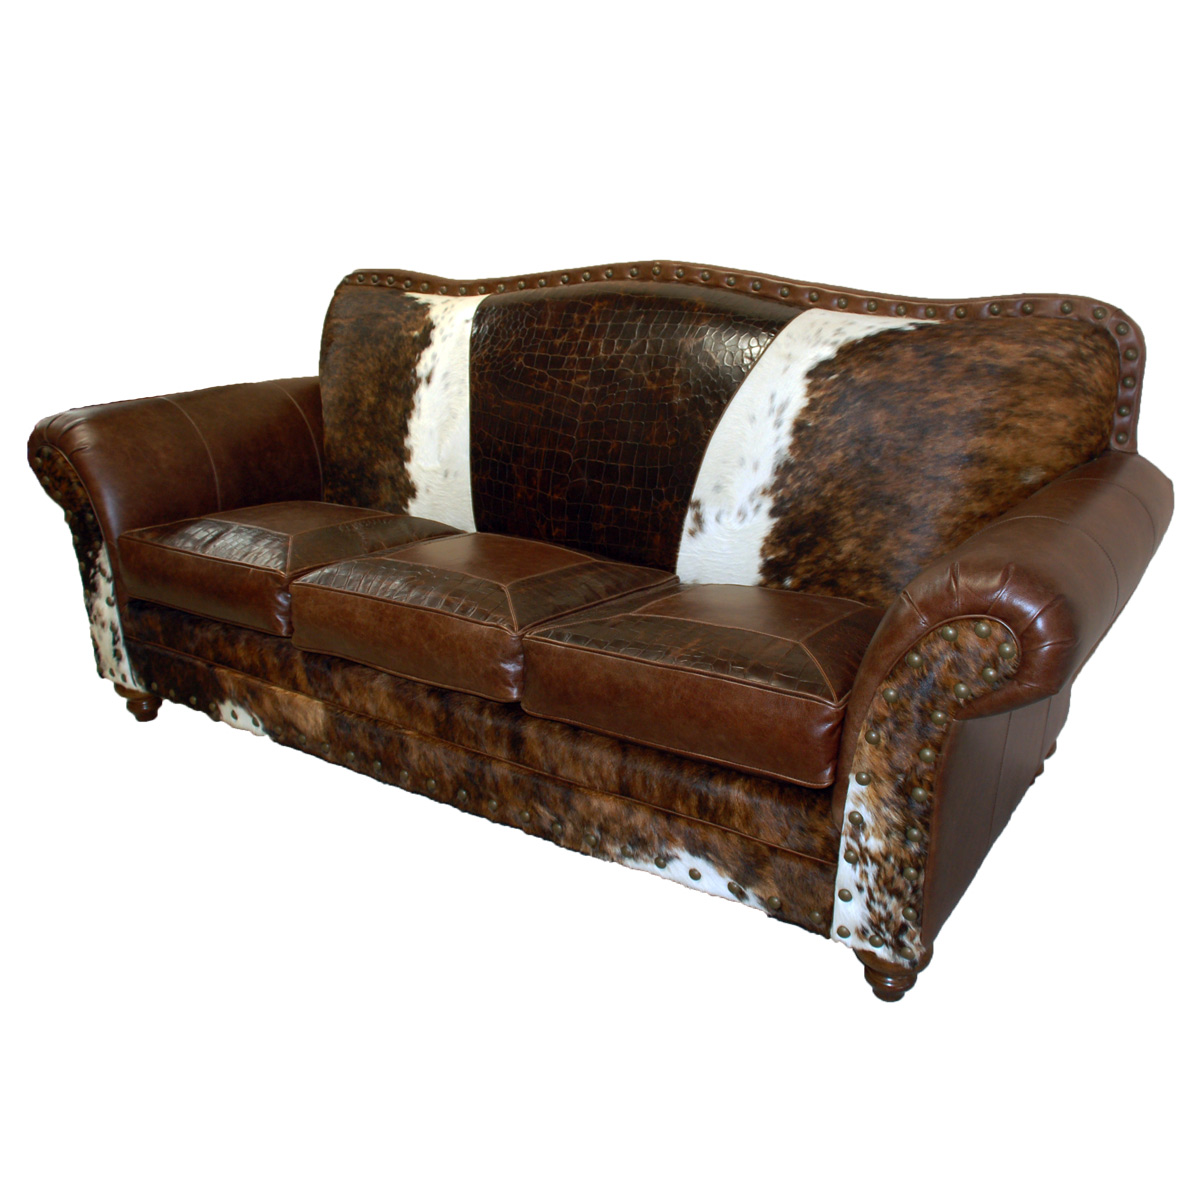 Black Forest Decor Vaquero 3 cushion sofa - 10 ft.